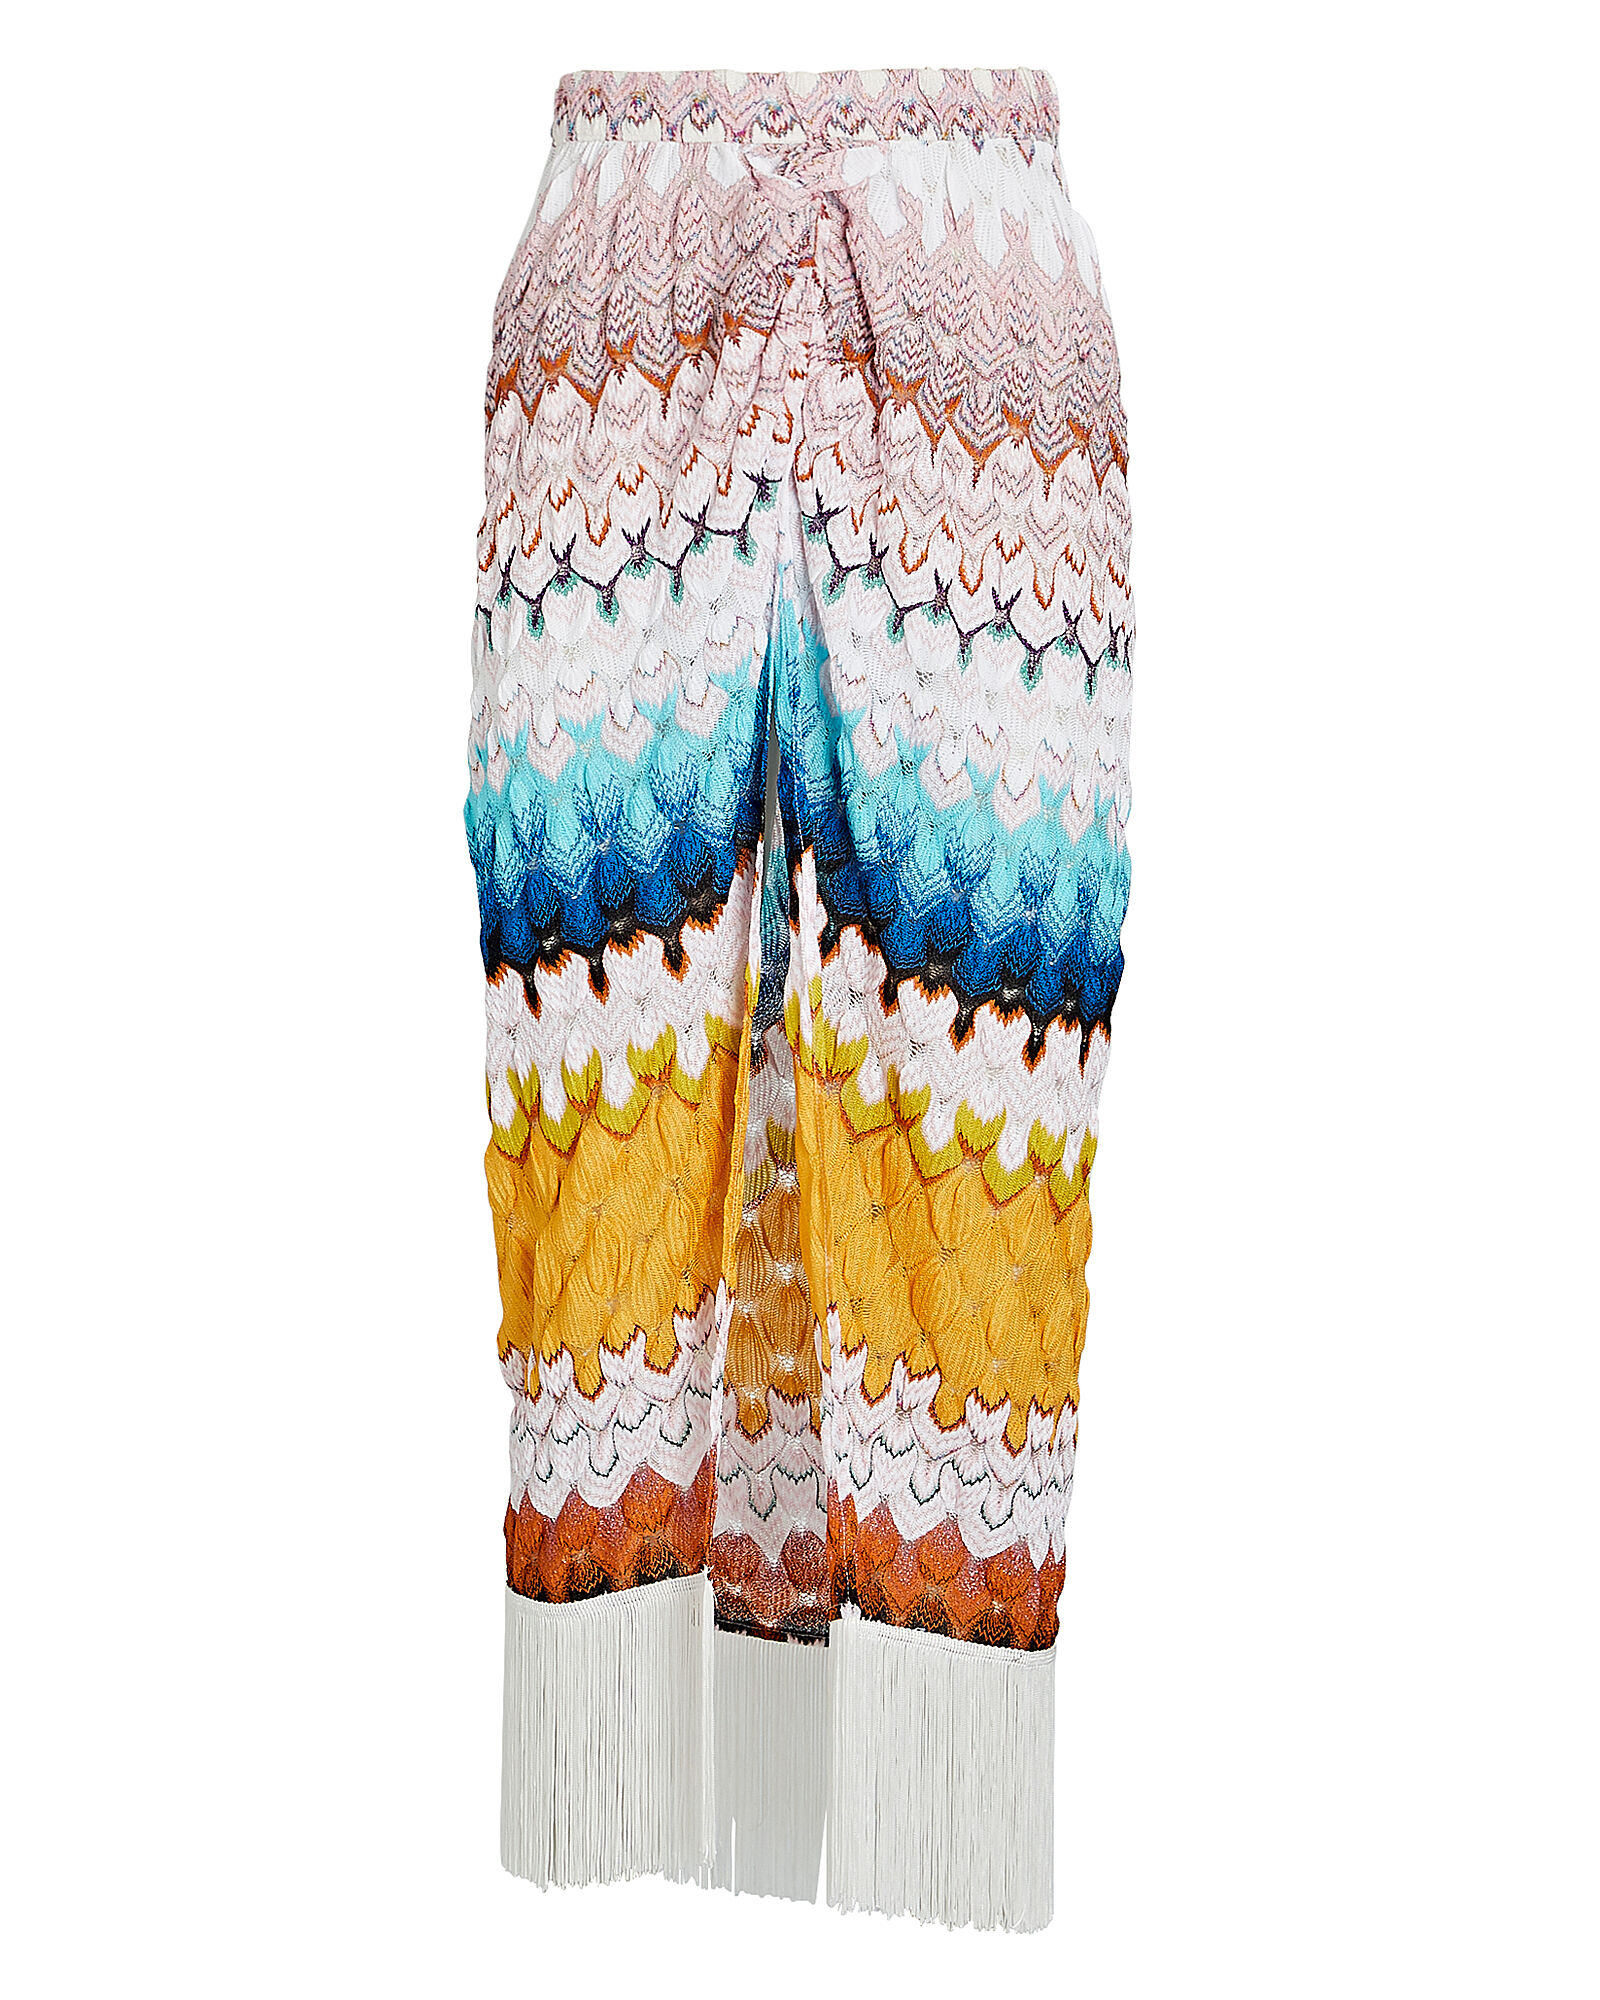 Knit Chevron Sarong Skirt, OMBRE RAINBOW WAVE, hi-res